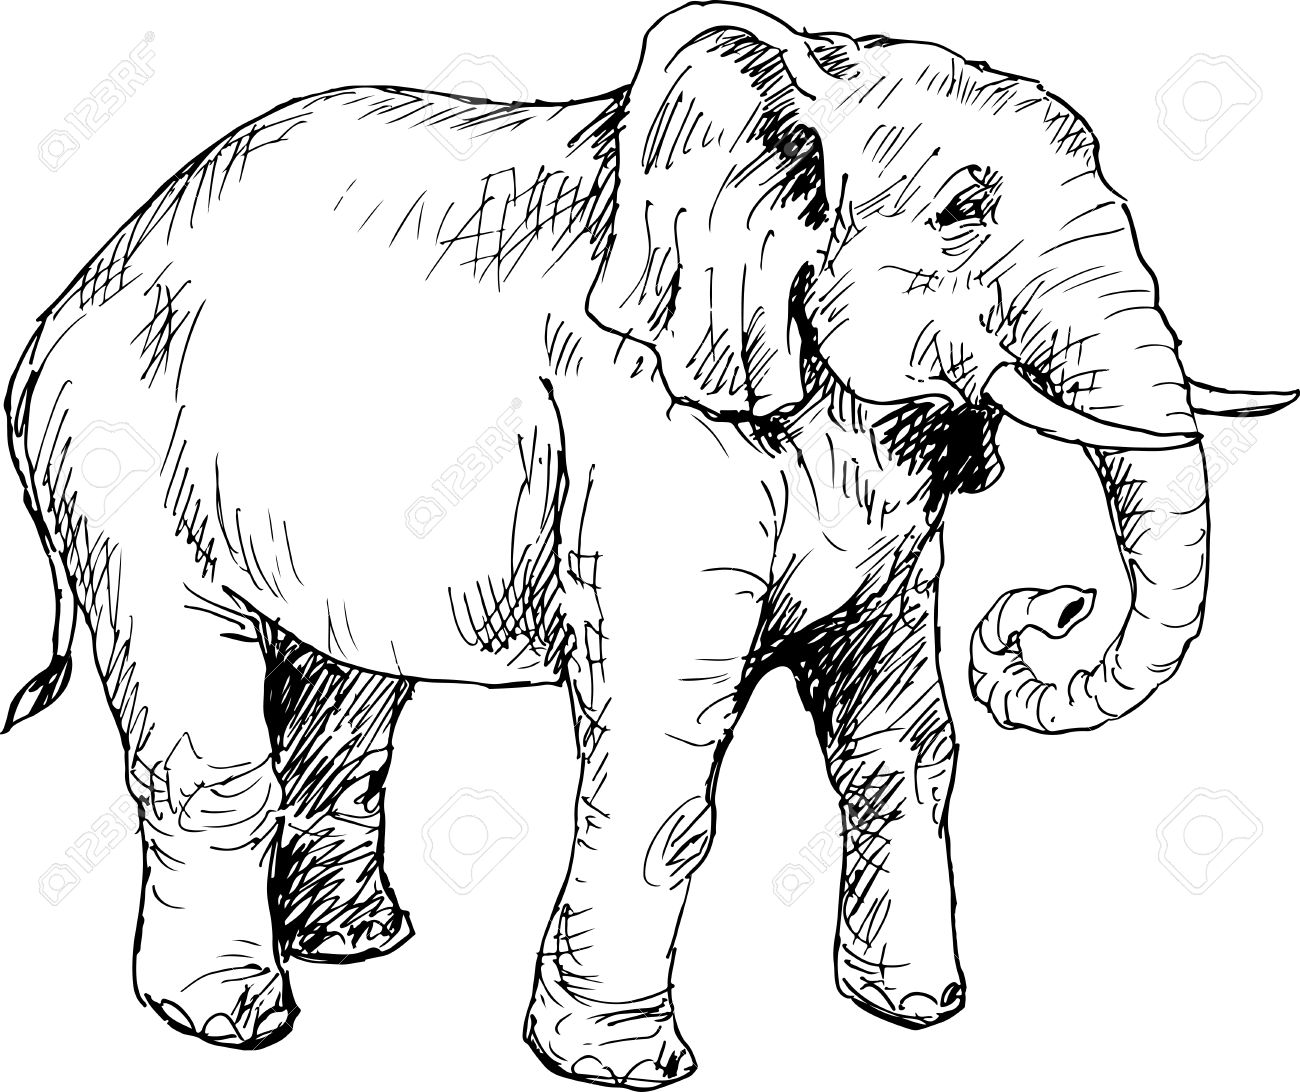 hand drawn elephant royalty free cliparts vectors and stock